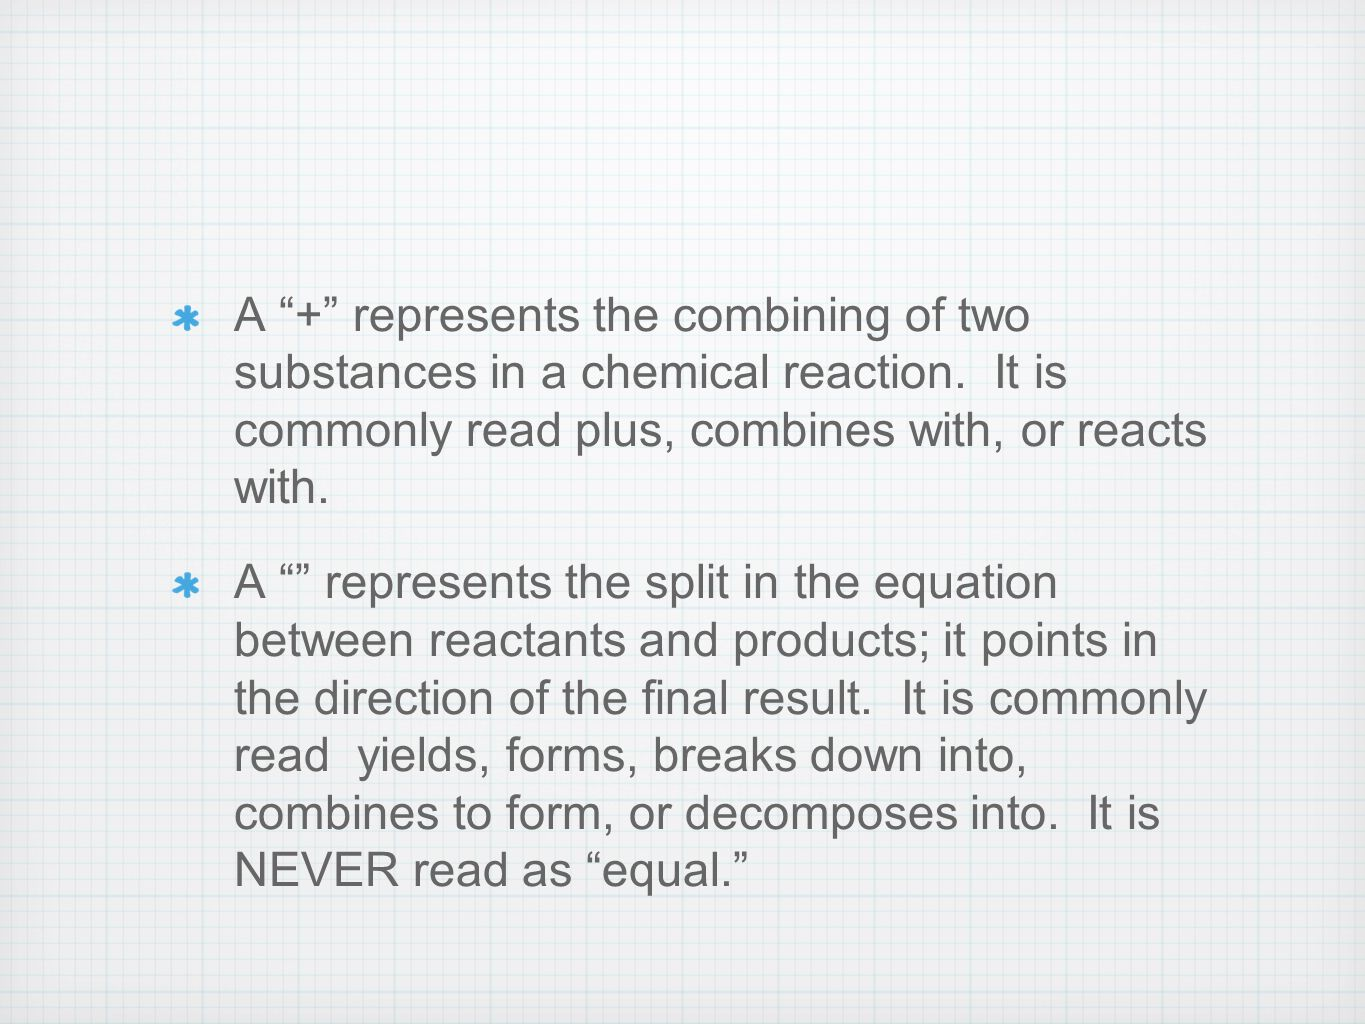 A + represents the combining of two substances in a chemical reaction.